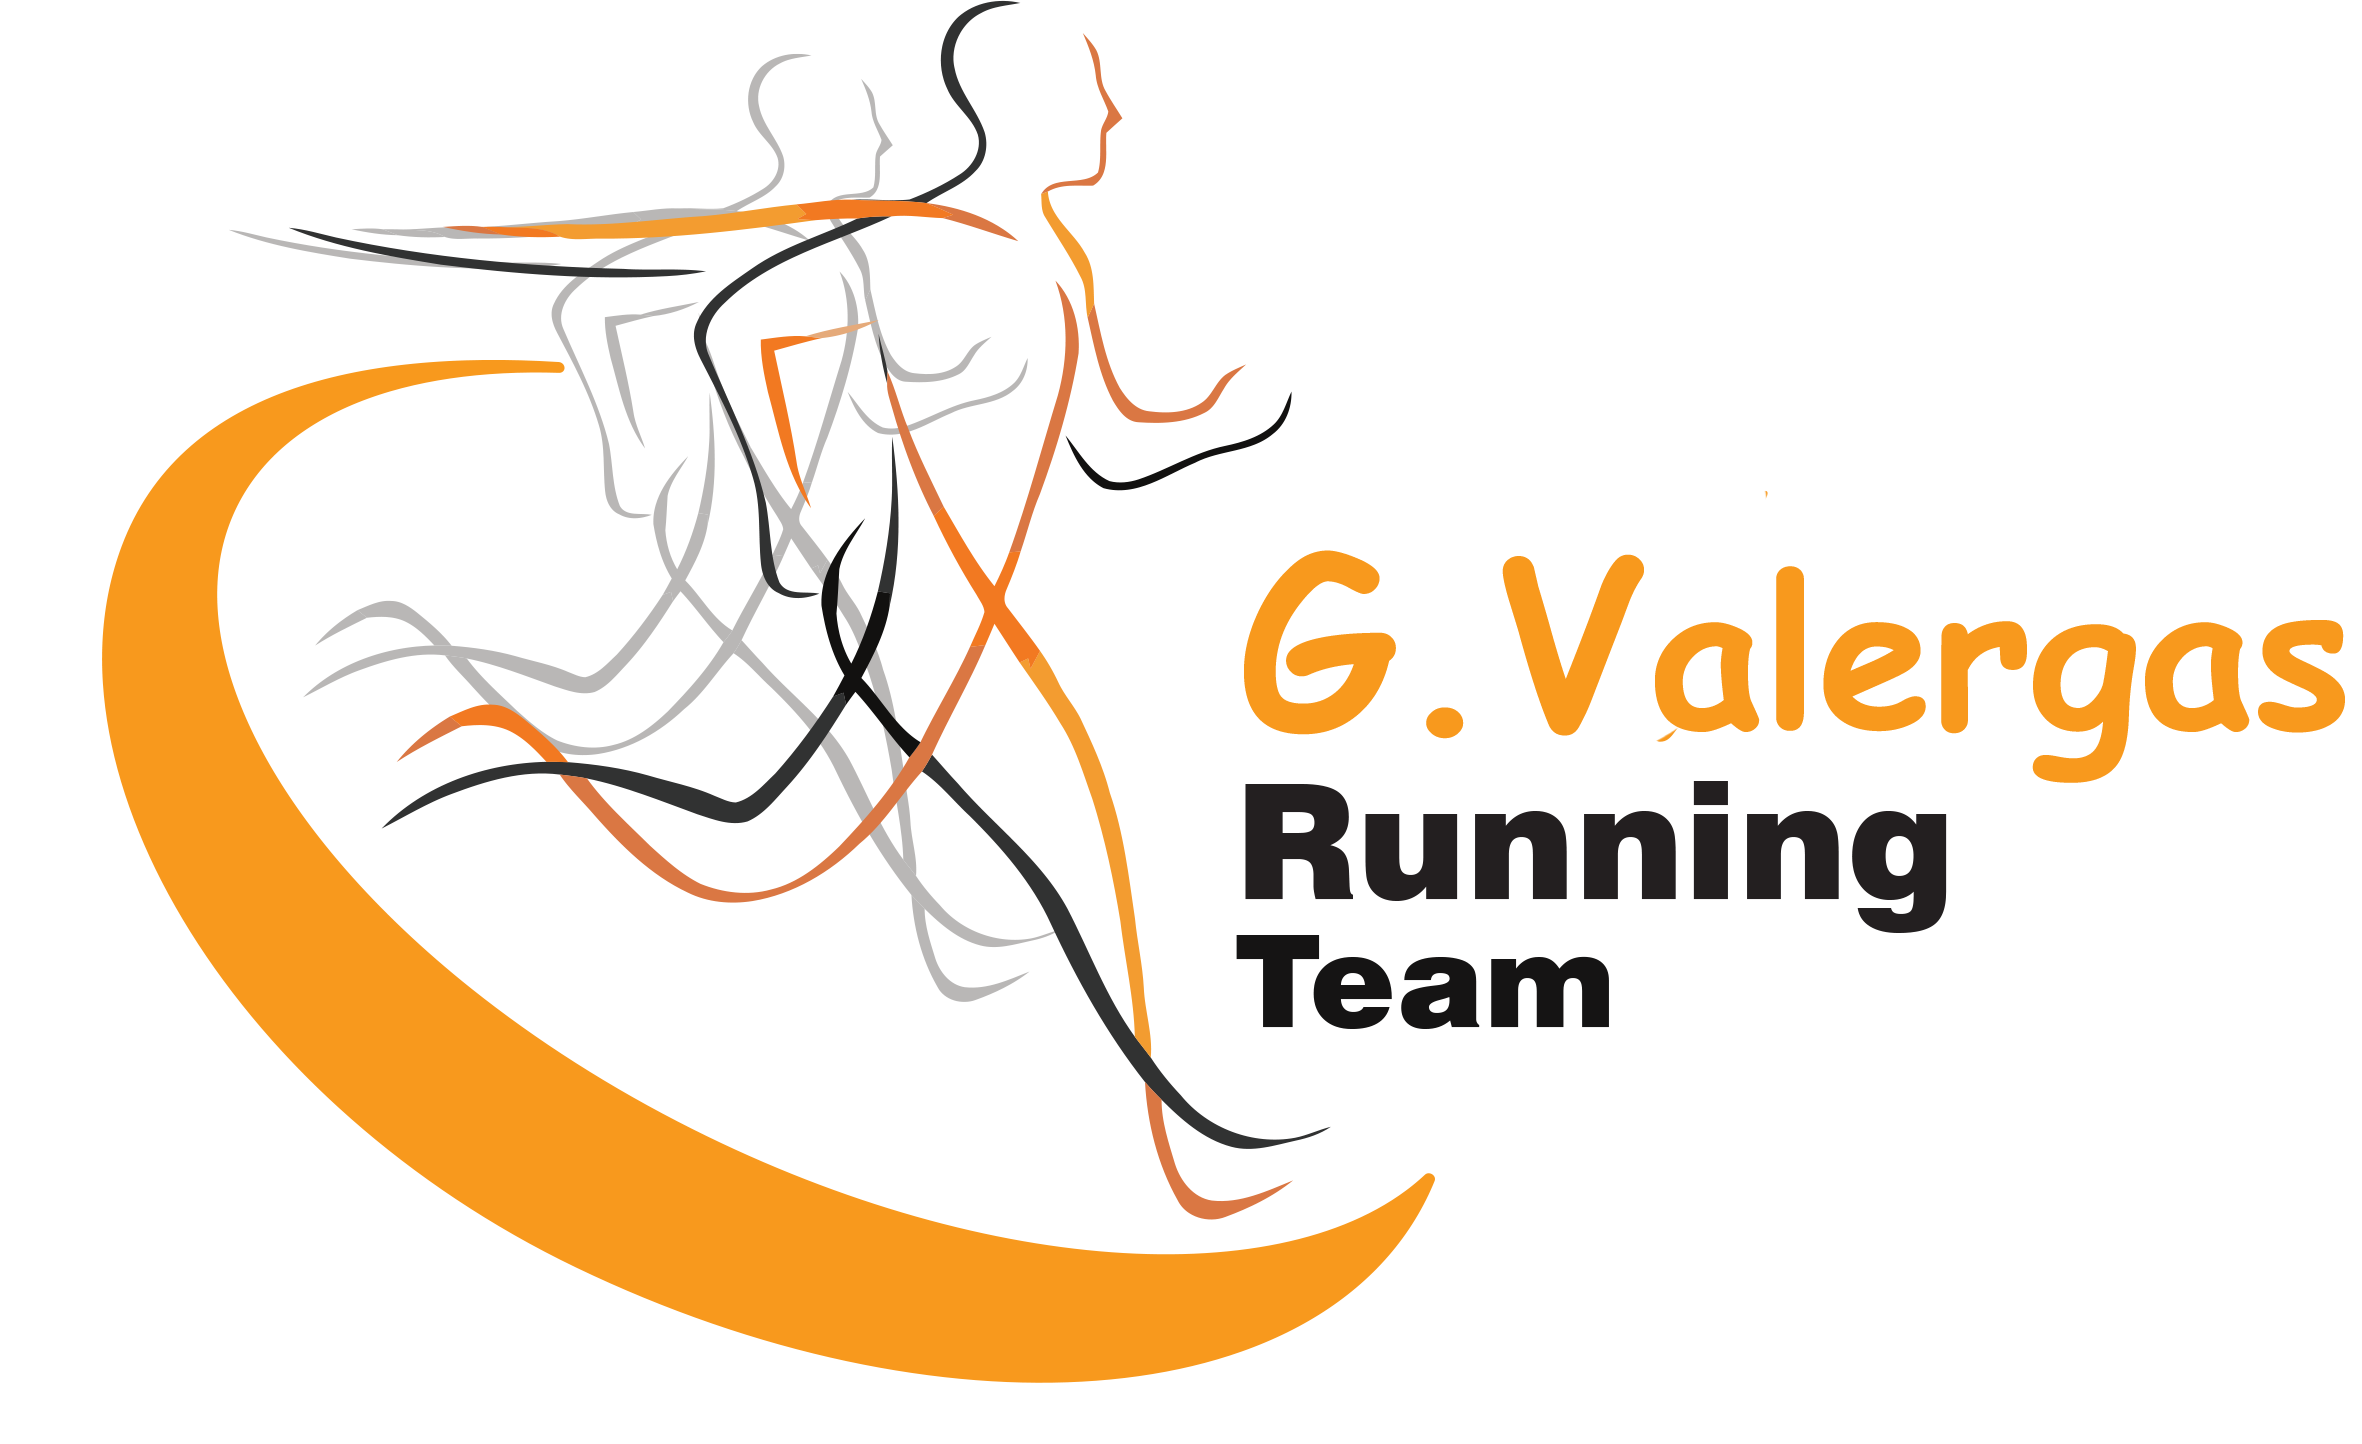 logo Running team